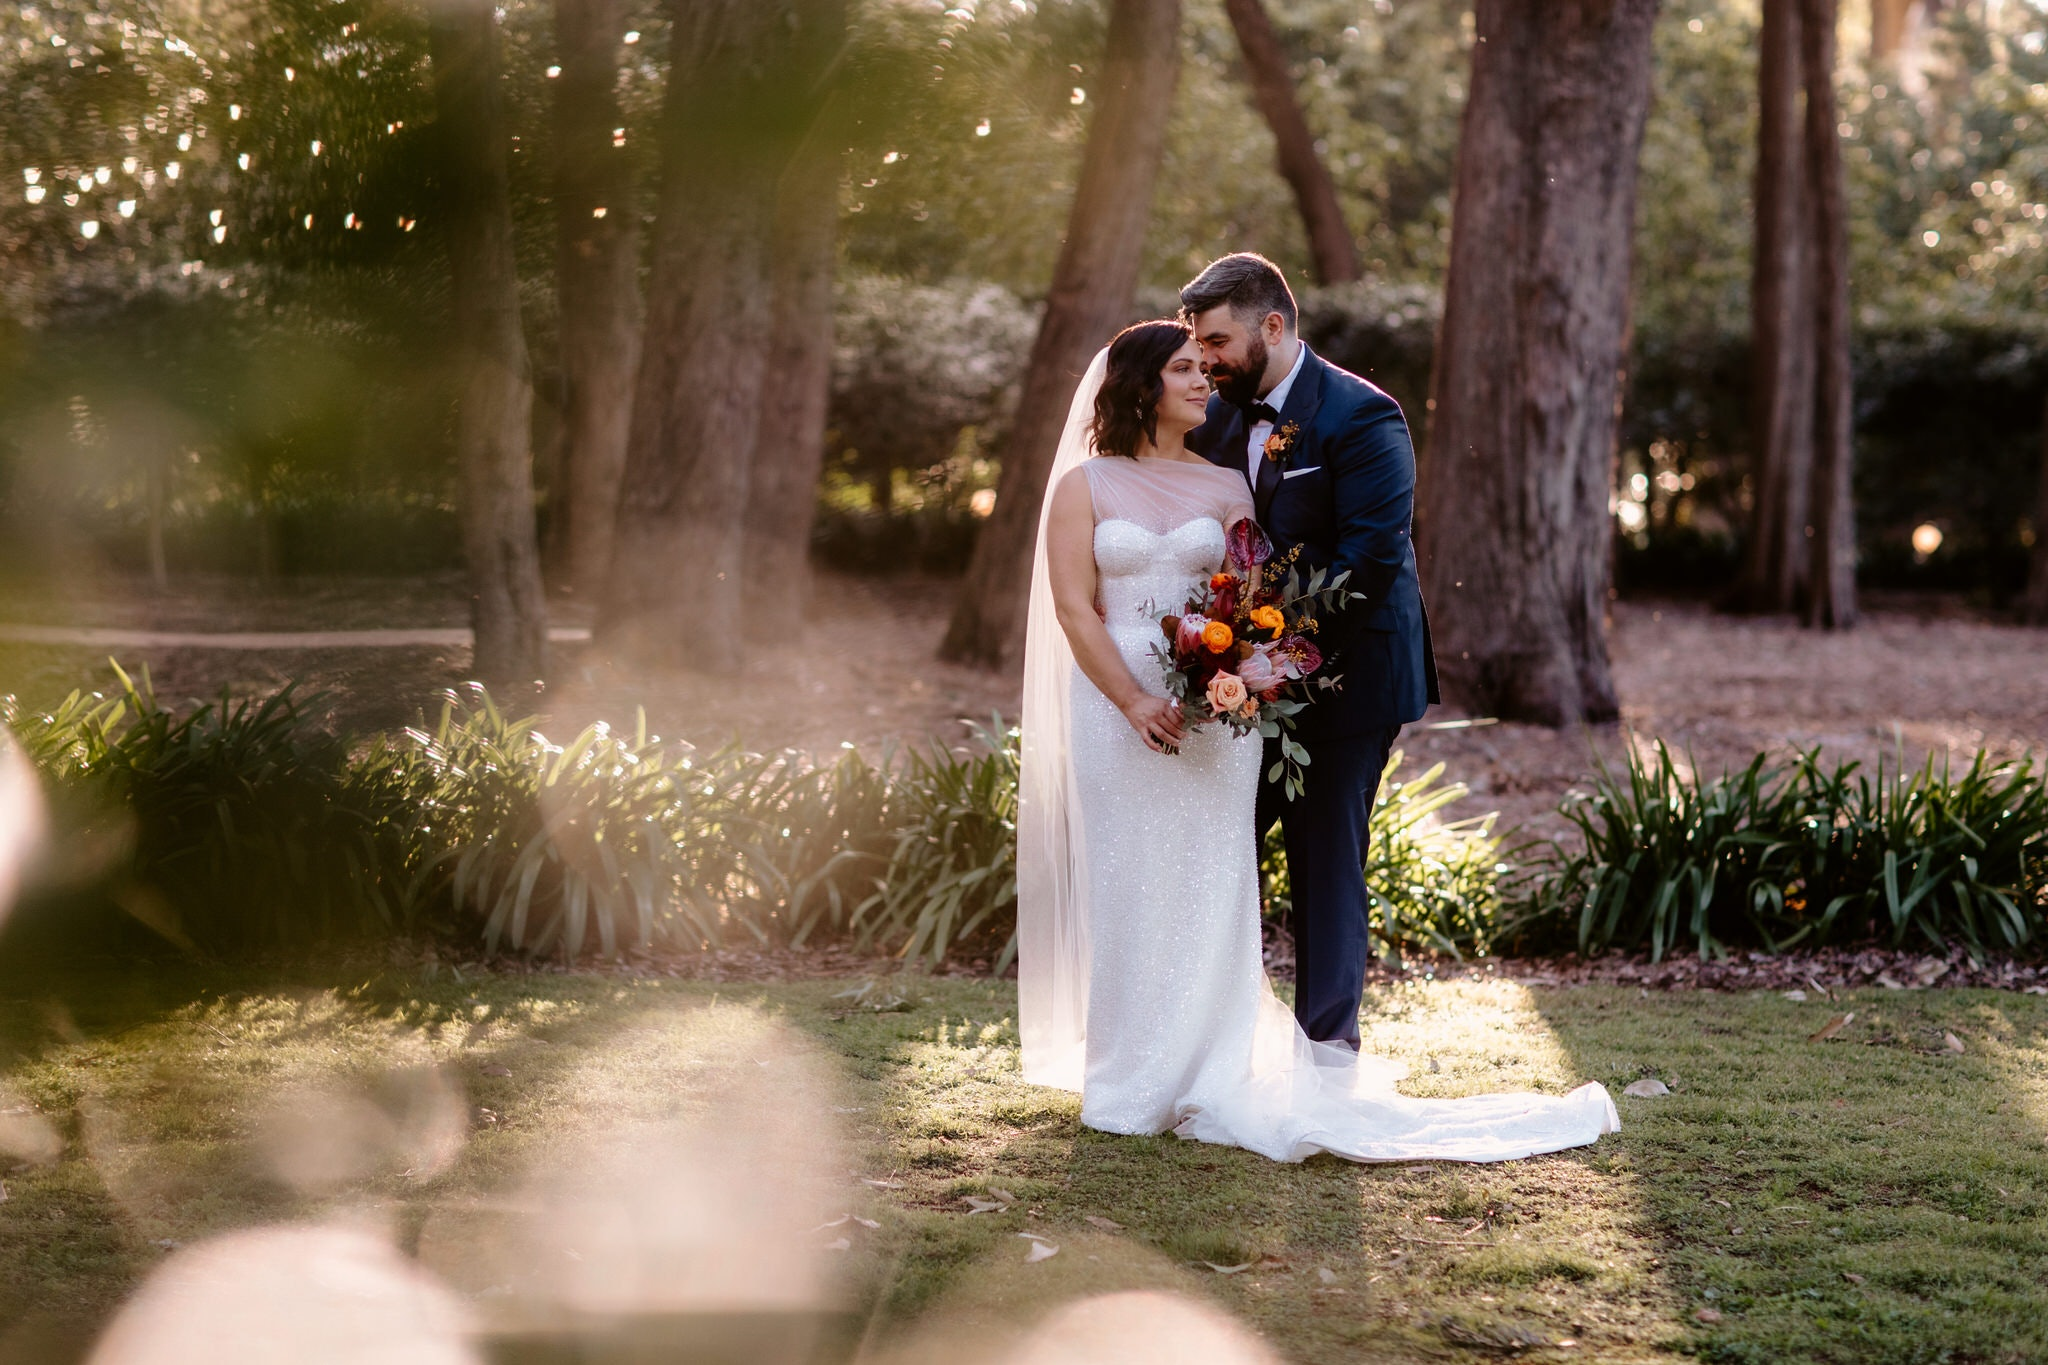 Bride and groom standing close together in gardens posing romantically